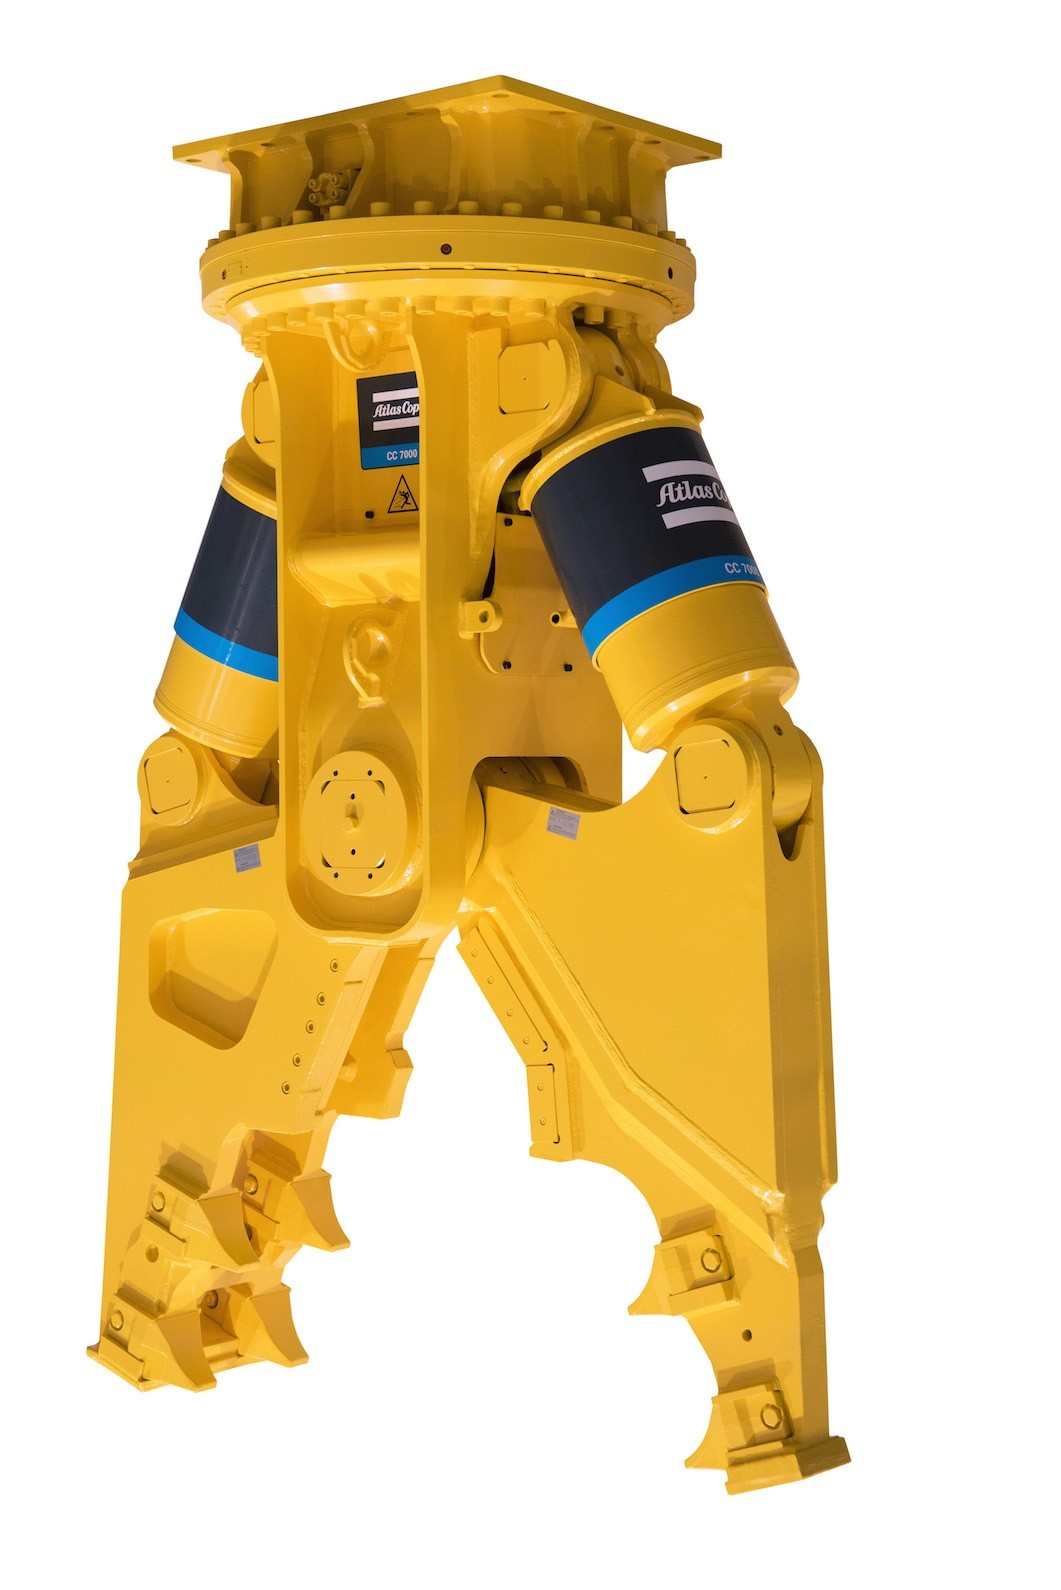 New CombiCutter CC 7000, a reliable partner for heavy demolition